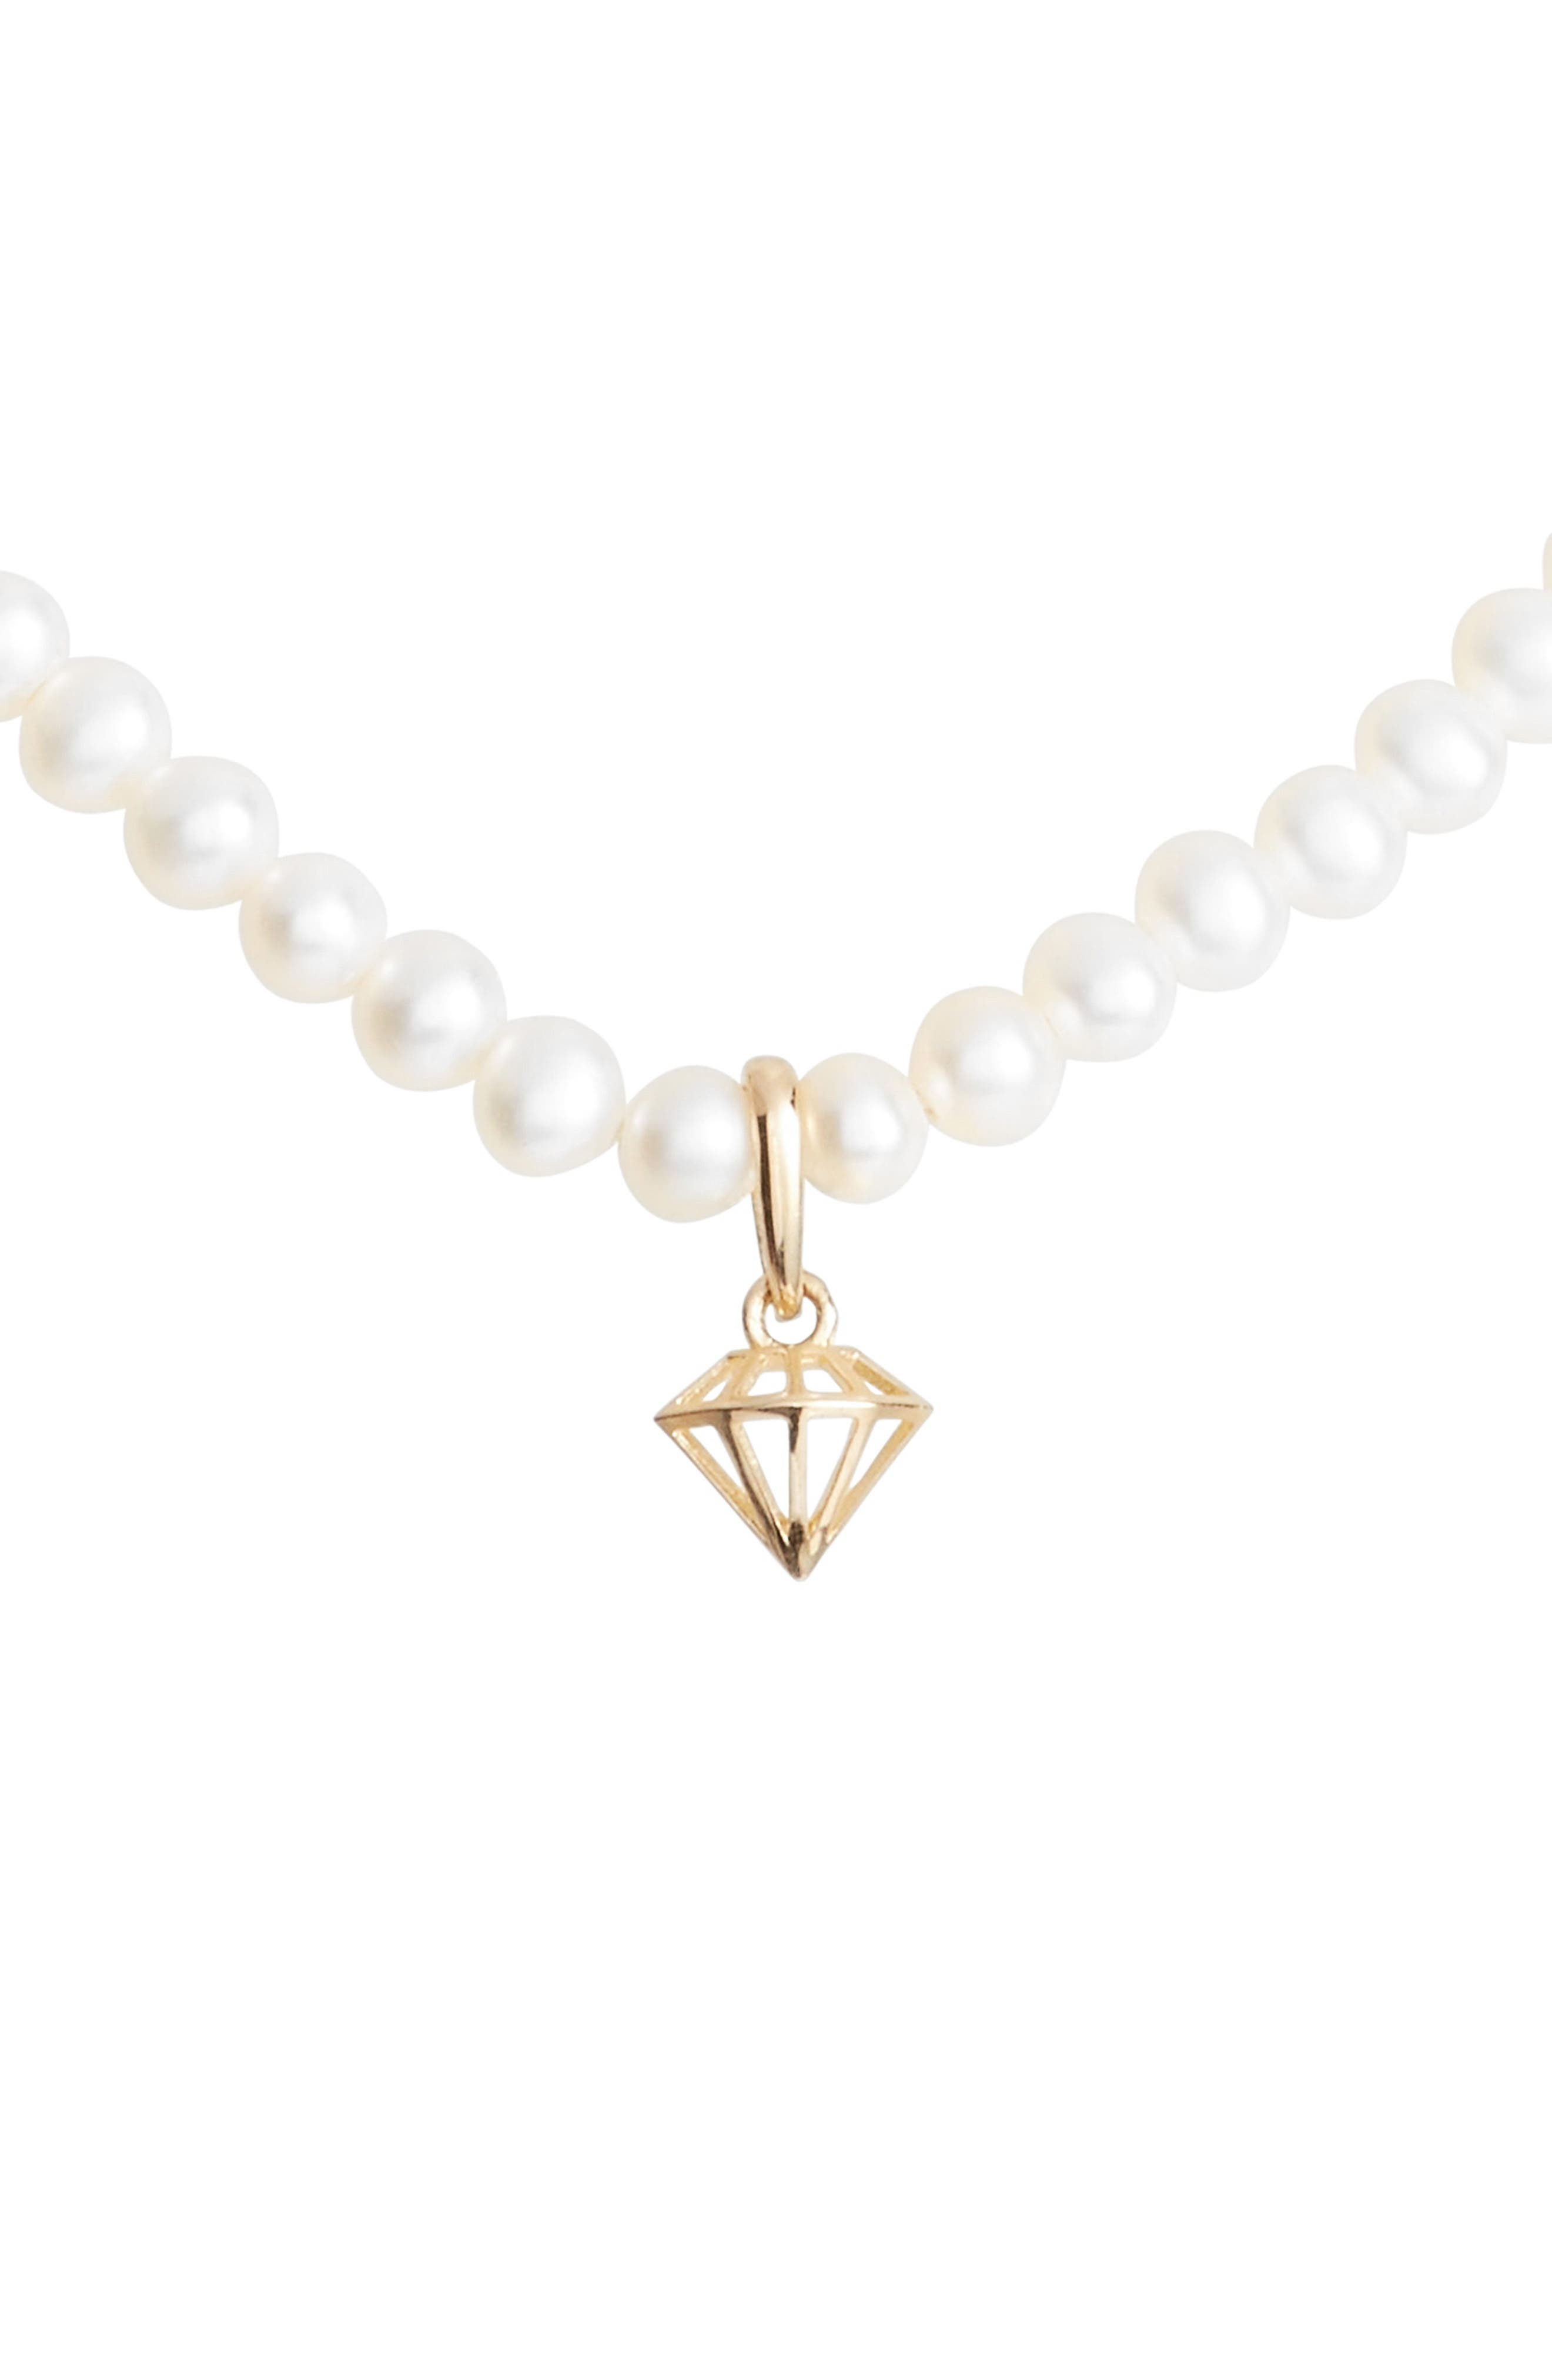 Diamond Charm Pearl Necklace,                         Main,                         color, Yellow Gold/ White Pearl